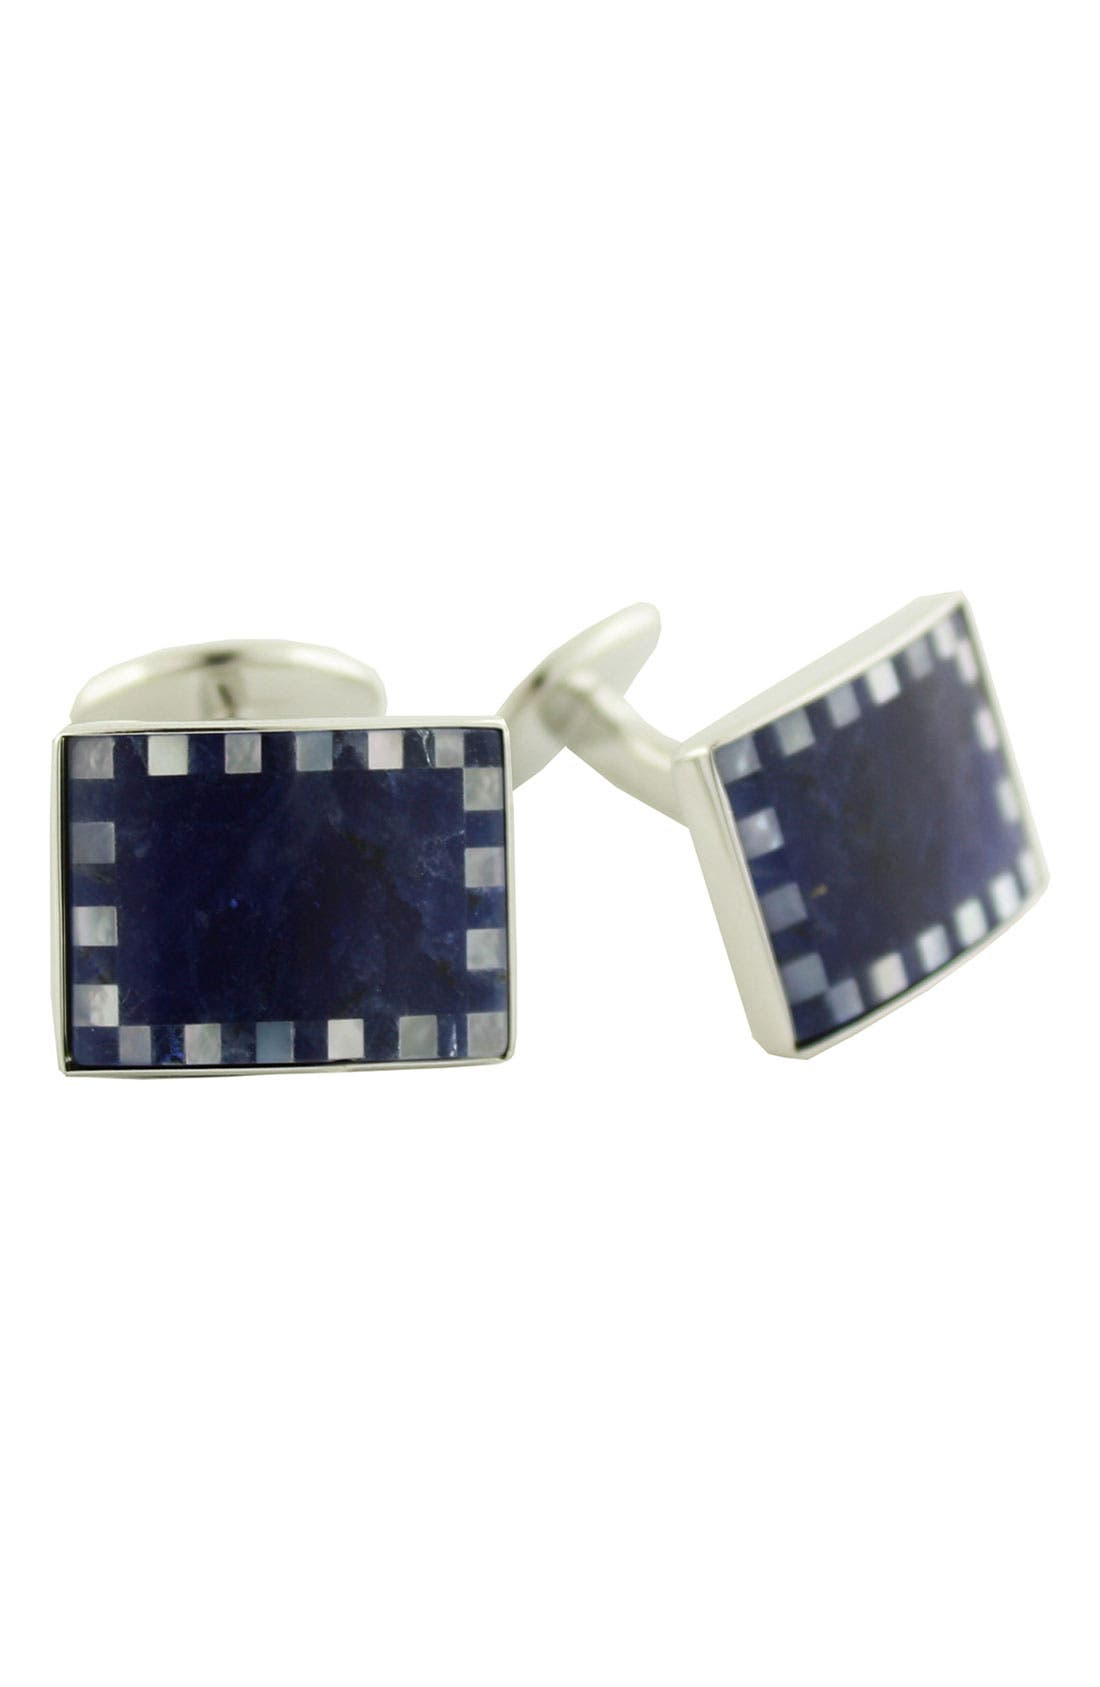 DAVID DONAHUE Sterling Silver, Sodalite & Mother-of-Pearl Cuff Links